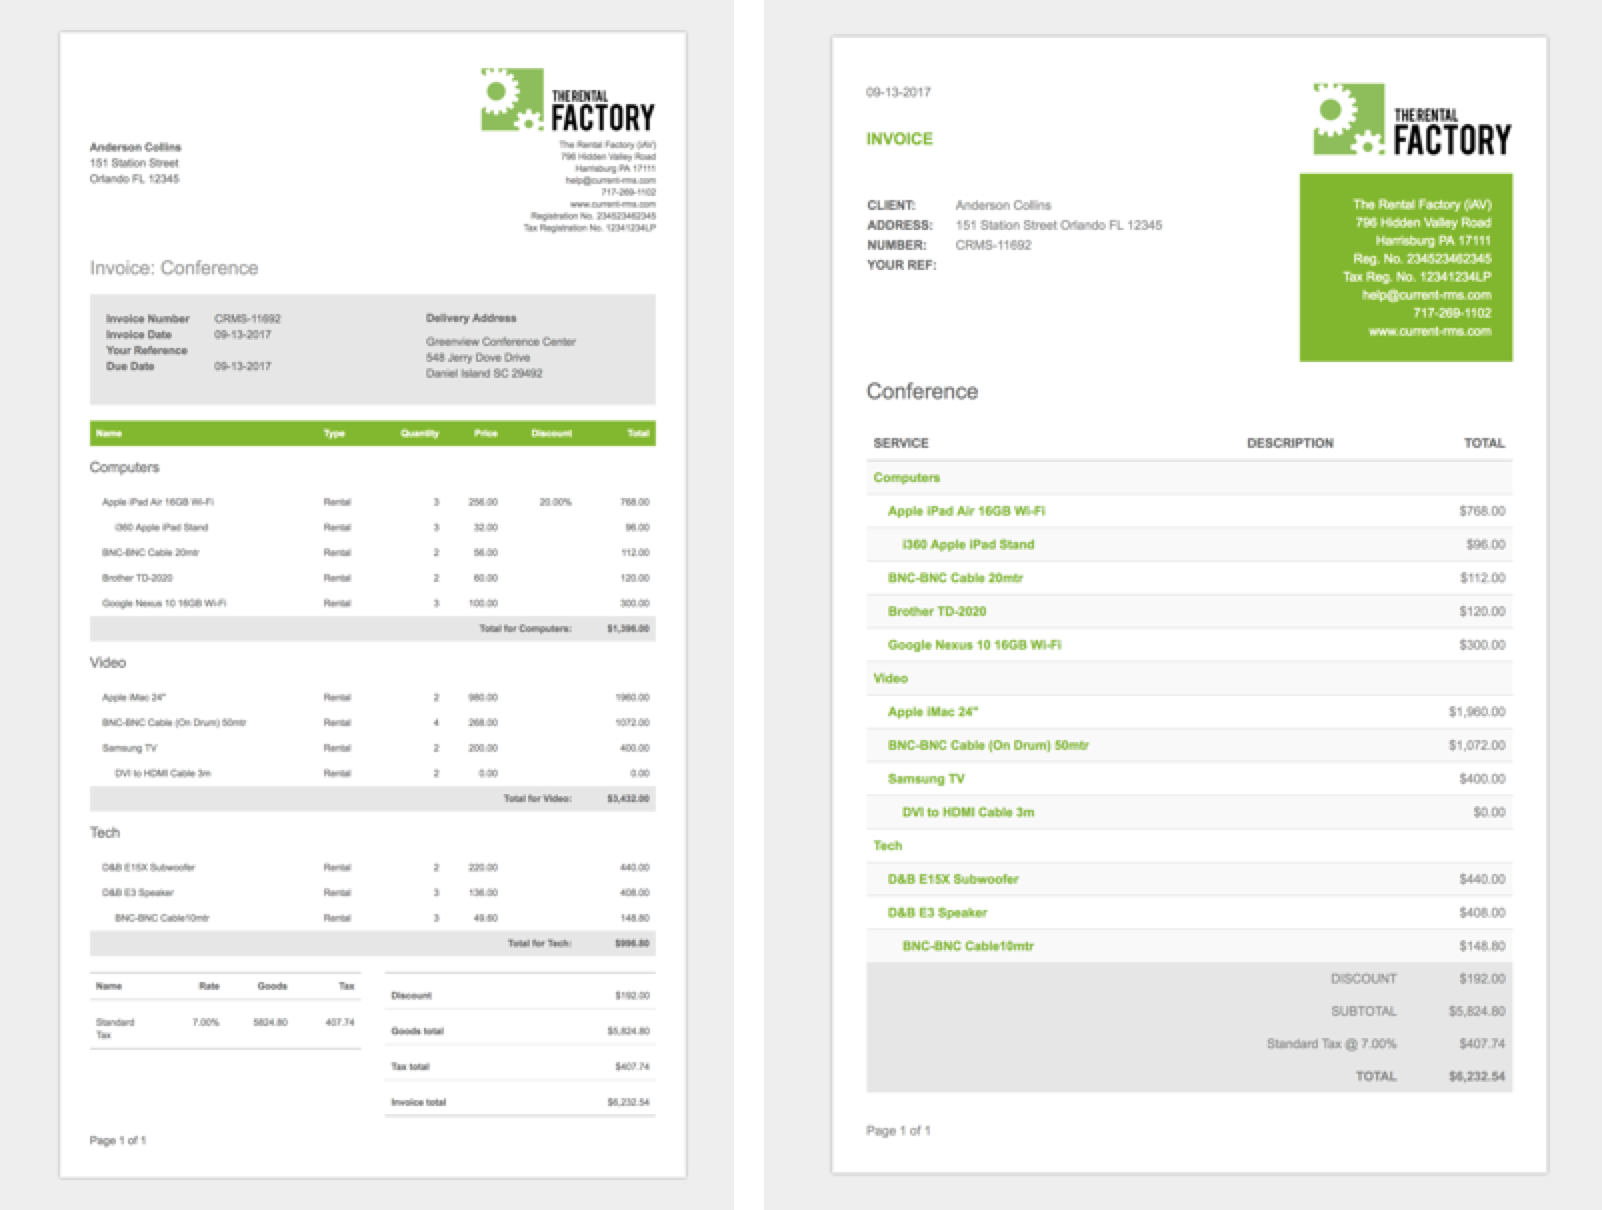 Print Download Or Send An Invoice Or Credit Current RMS Guides - Invoice delivery system